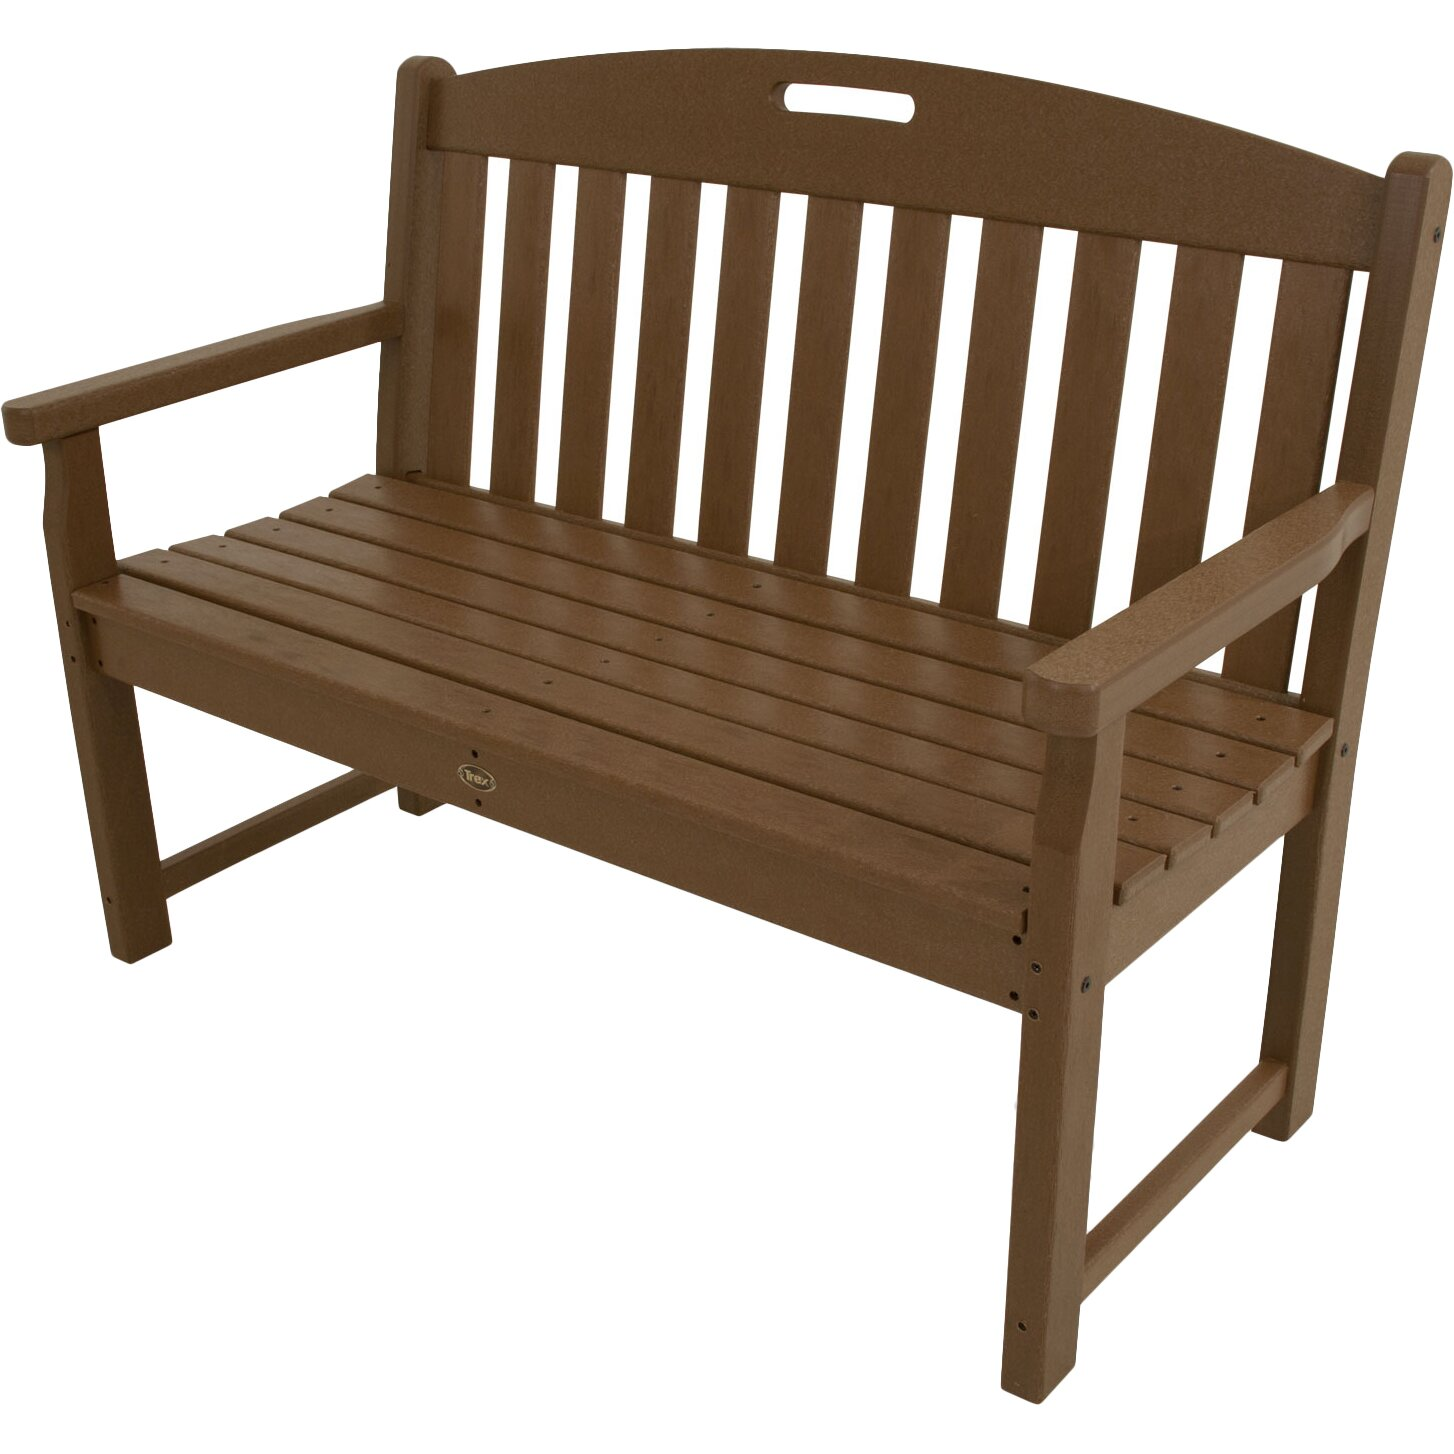 Trex yacht club polyethylene garden bench reviews wayfair for Outdoor furniture benches